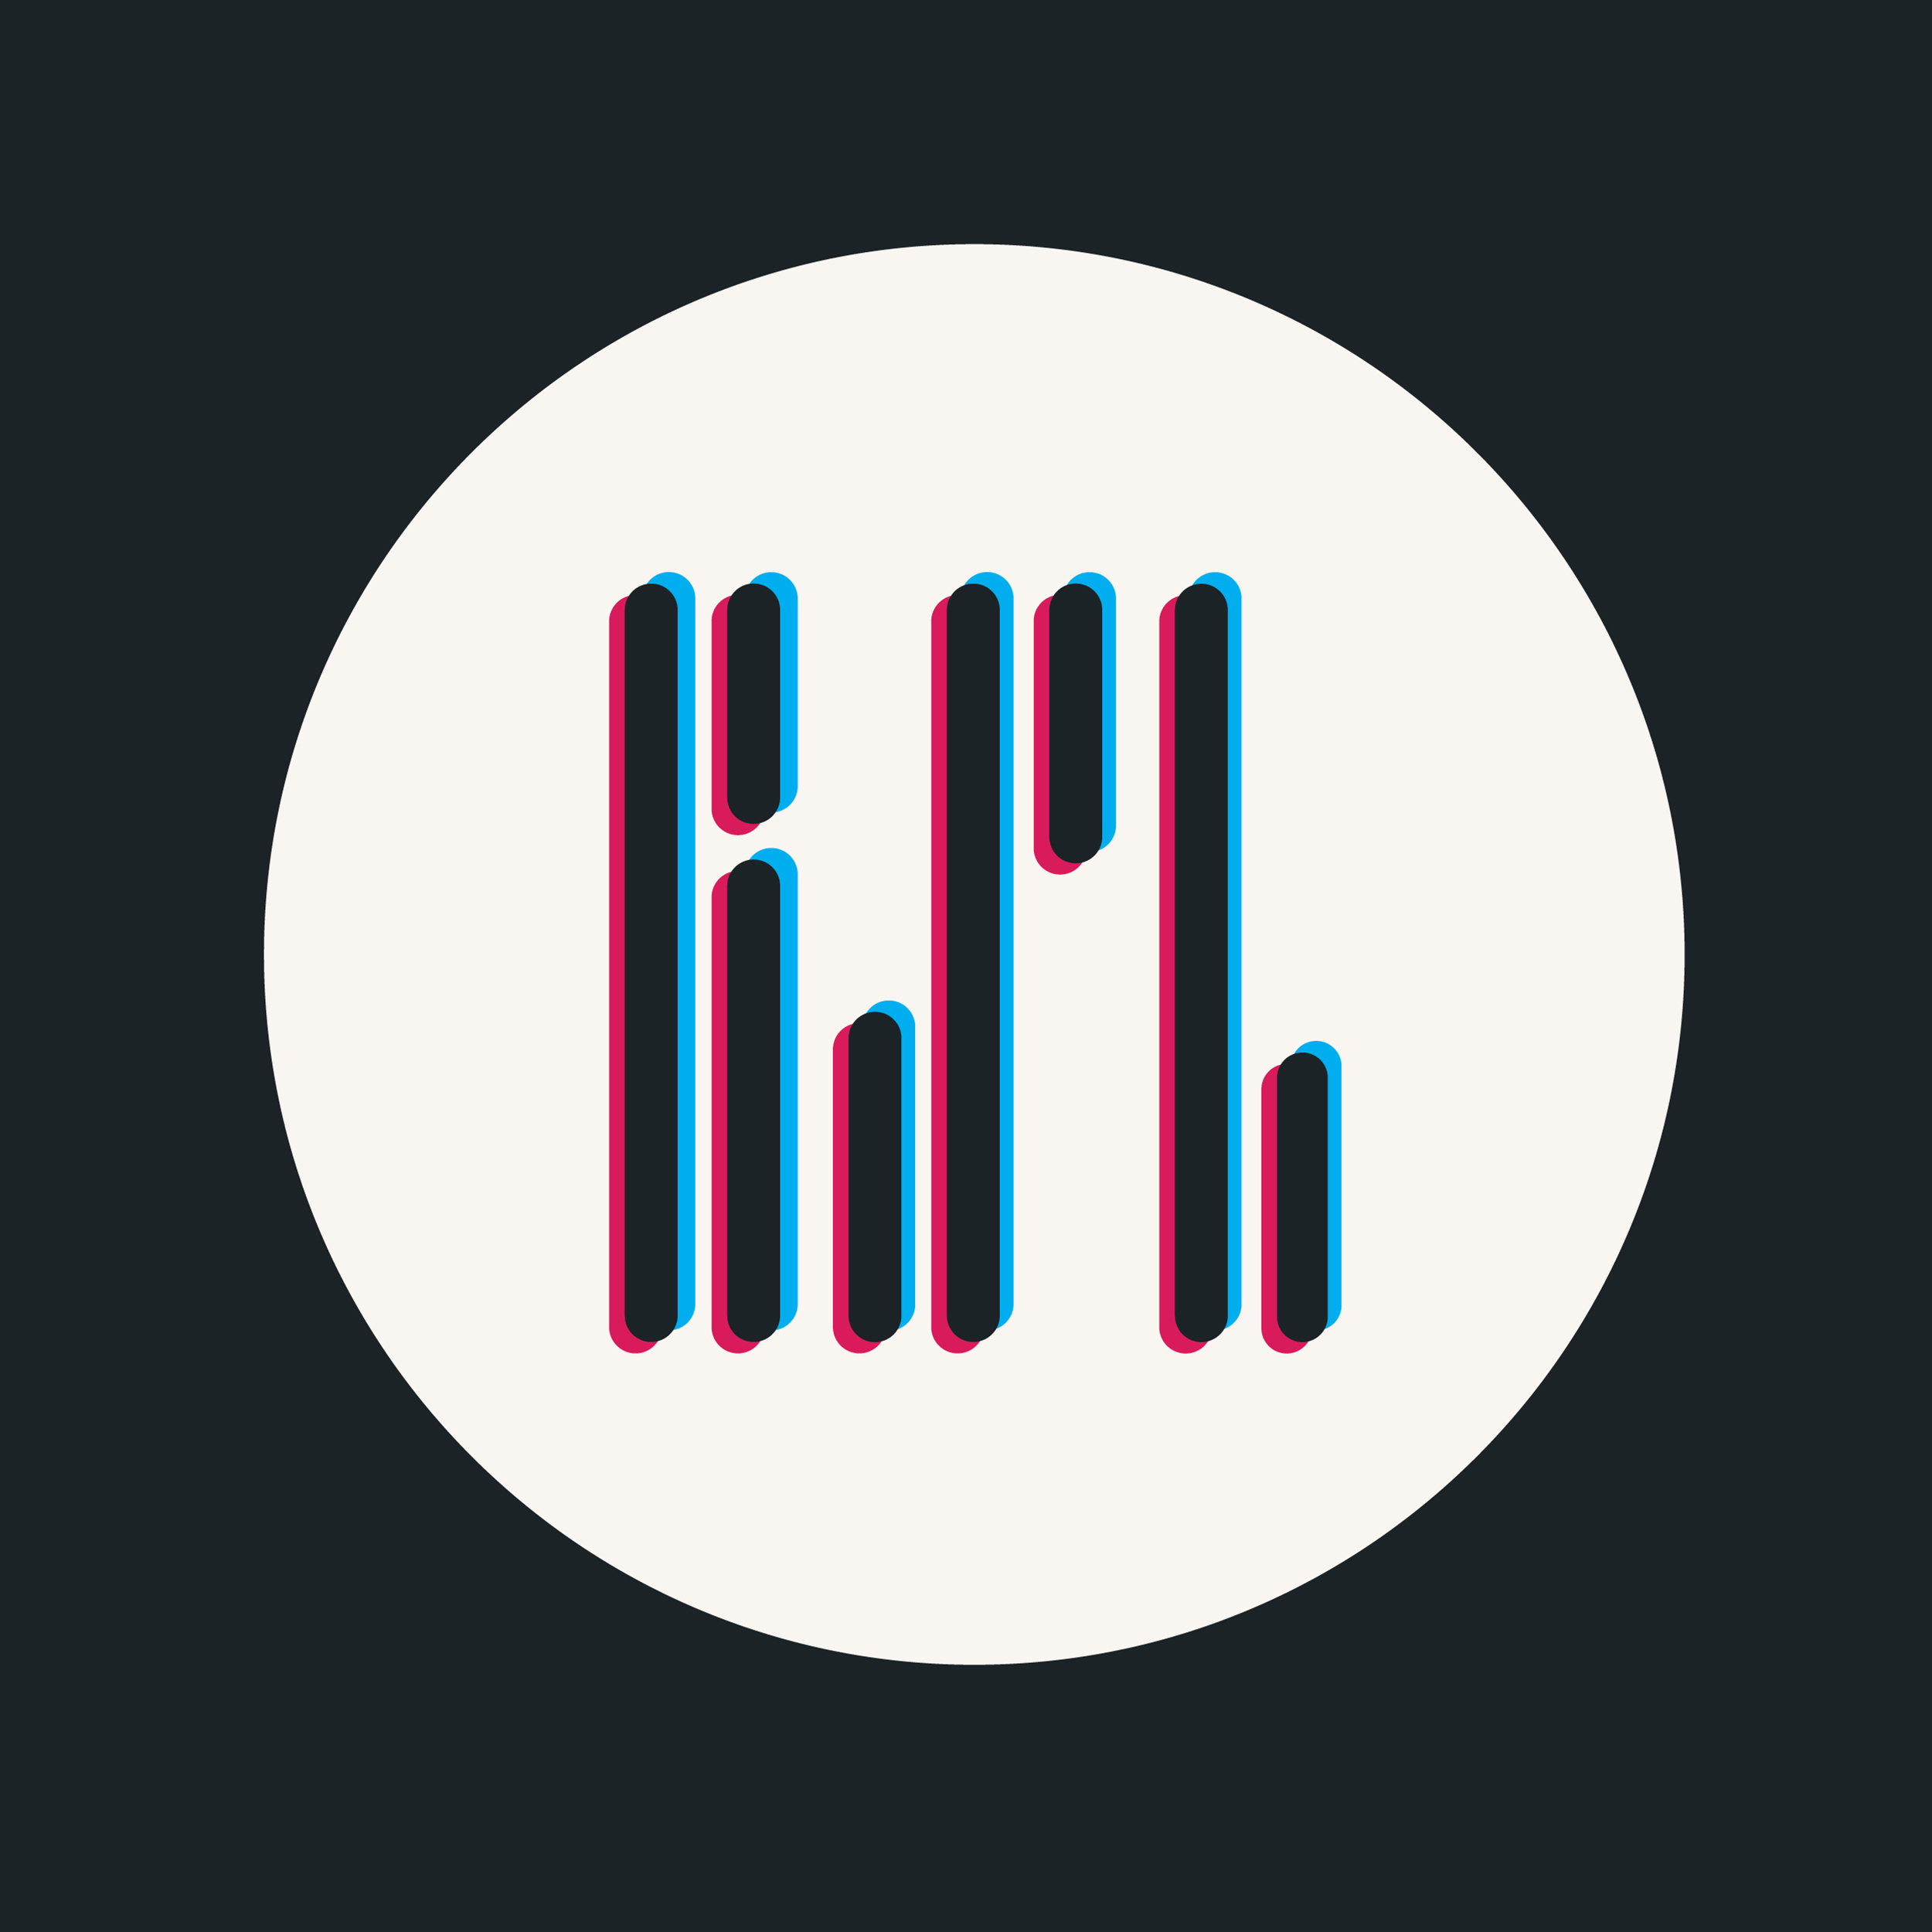 Abstract 'r', 's' and 'l' letters made up of rounded edge bars with ablur effect inside of a white circle.